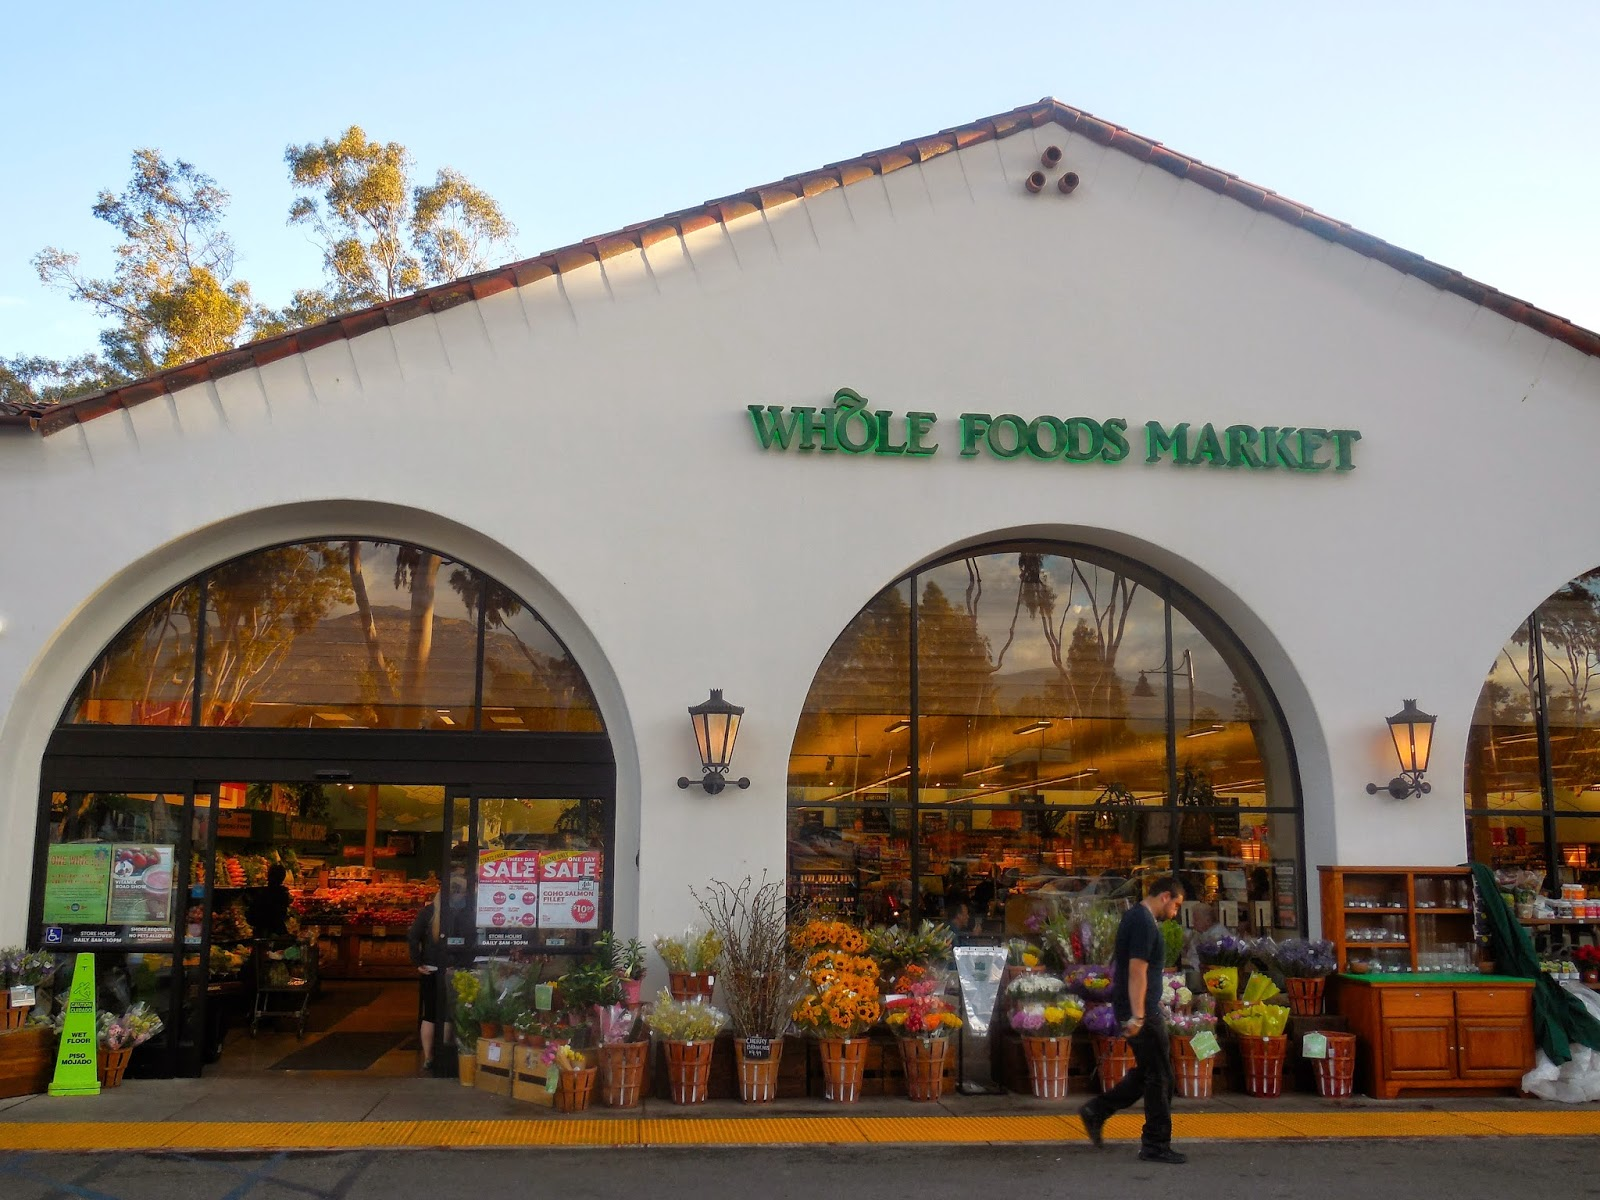 Whole Foods Market, Santa Barbara, WFM